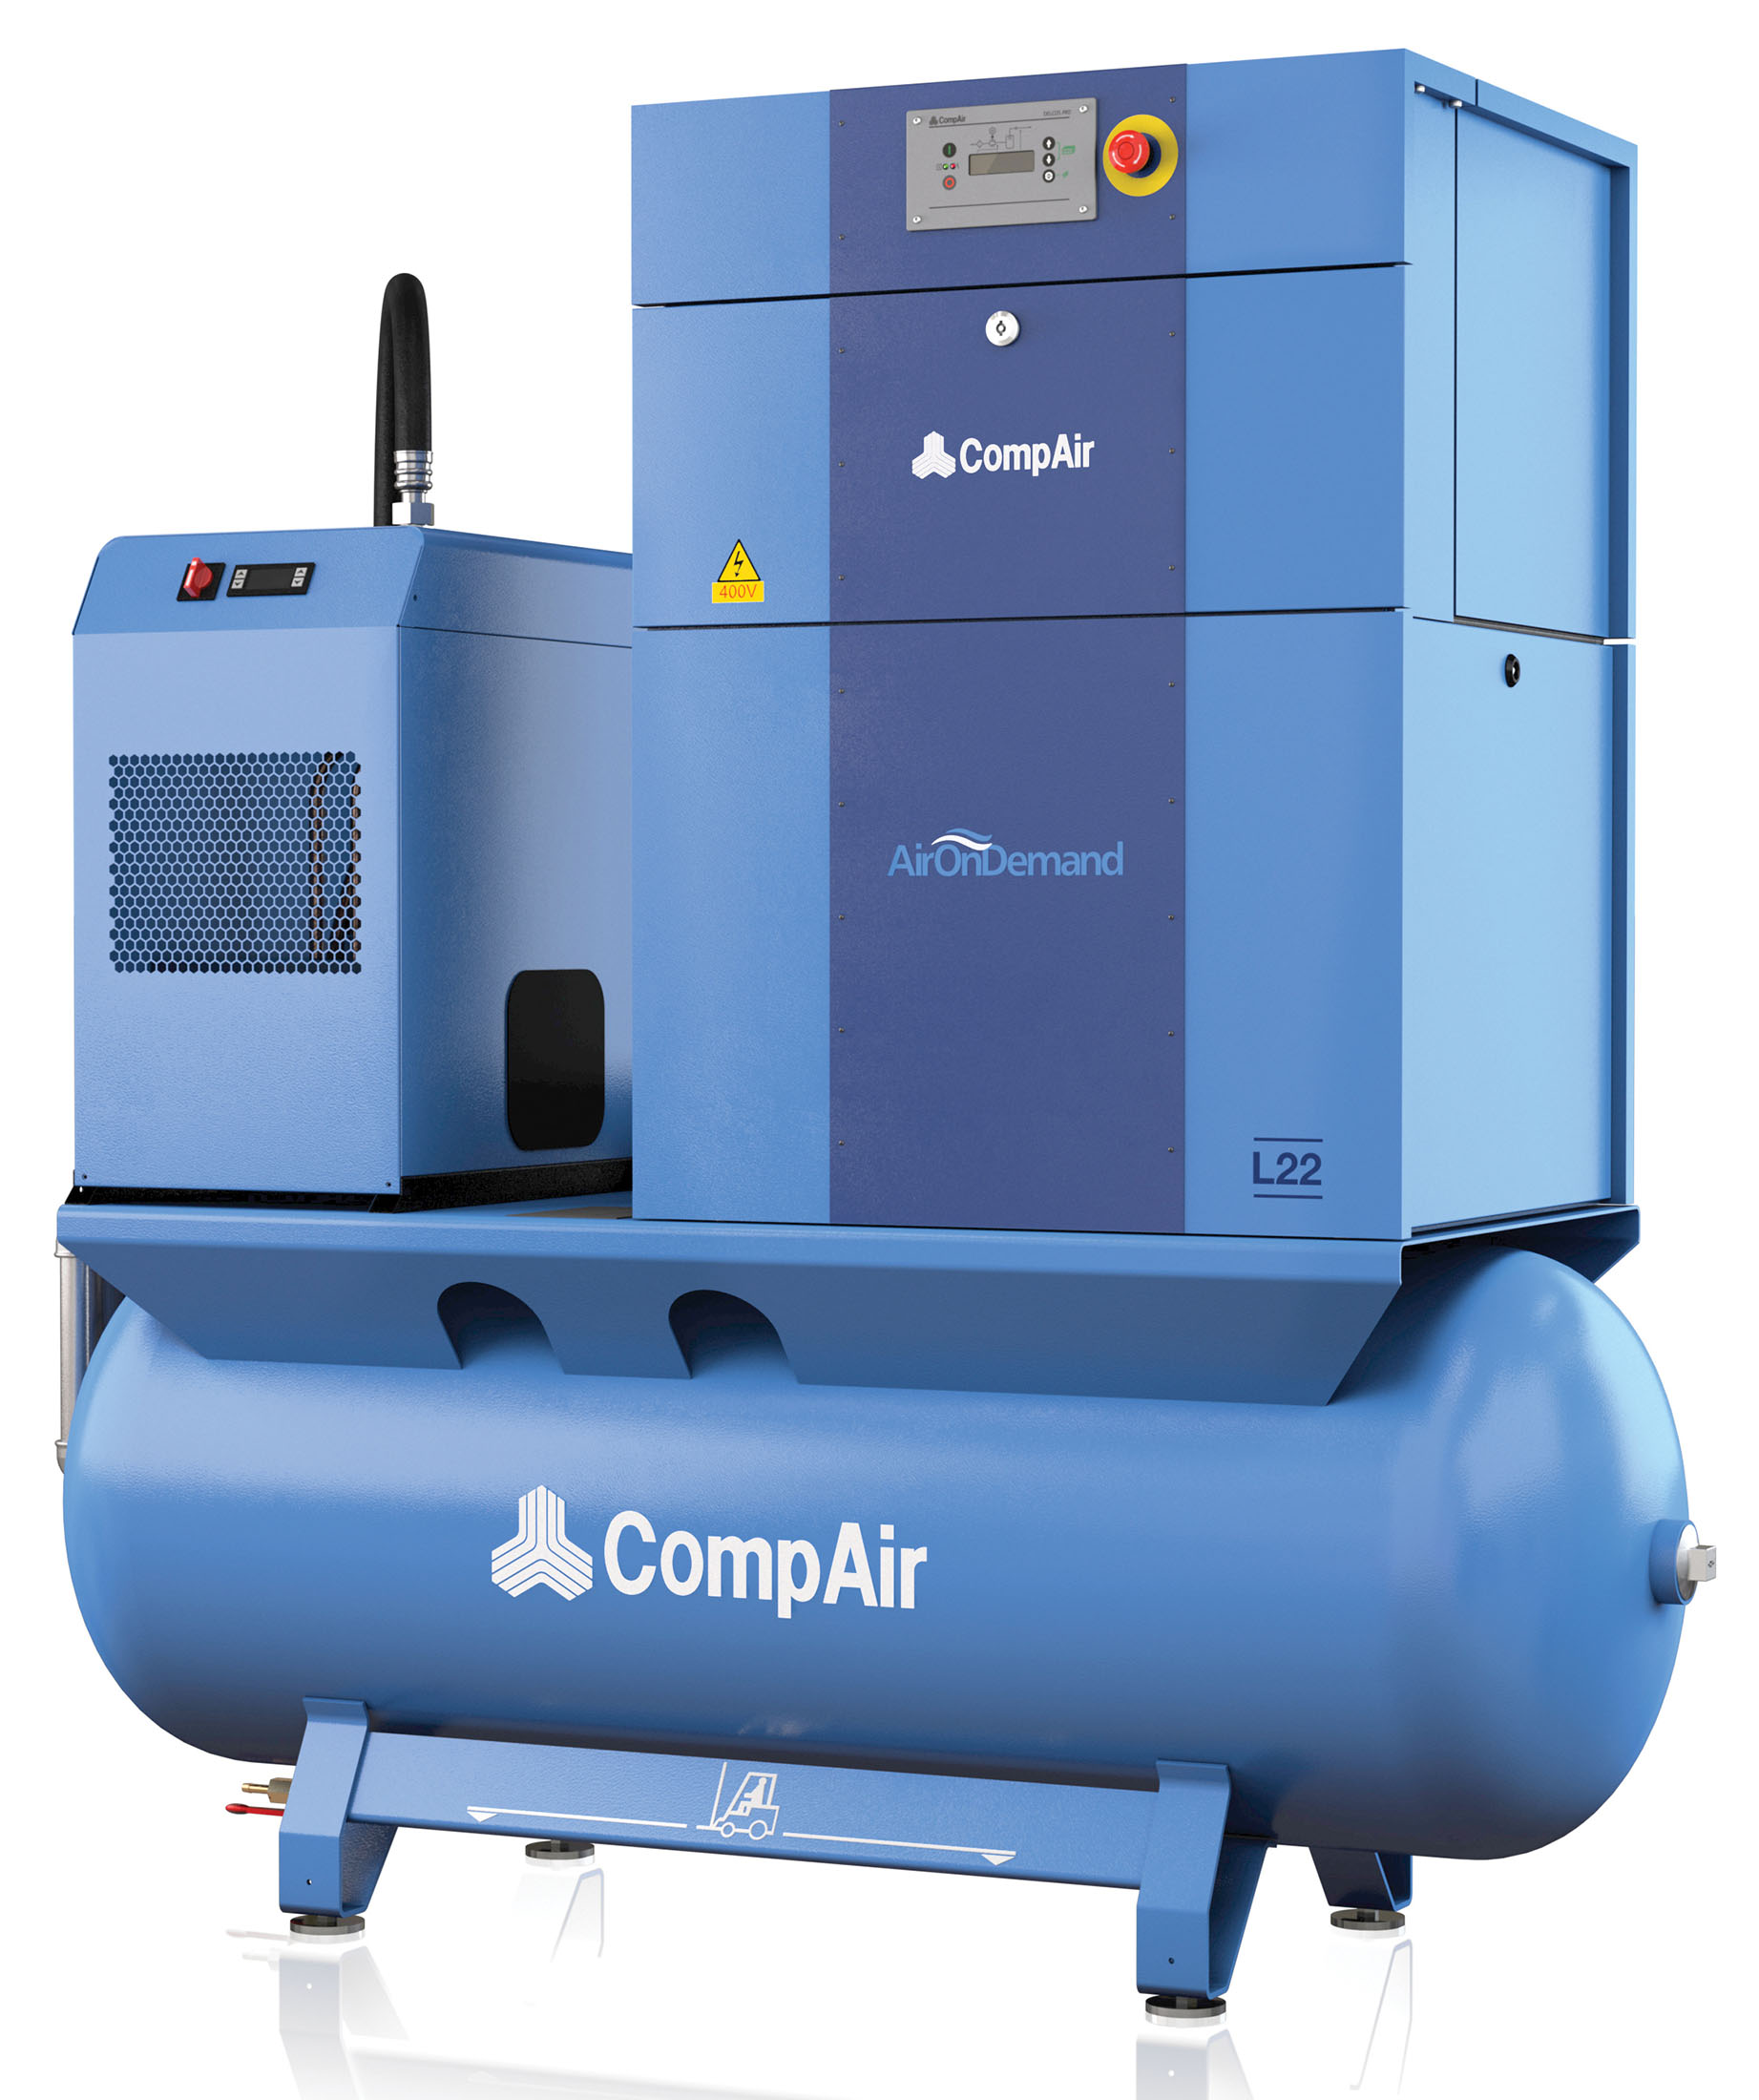 Midlands UK supplier of CompAir L22RS AirStation air compressor